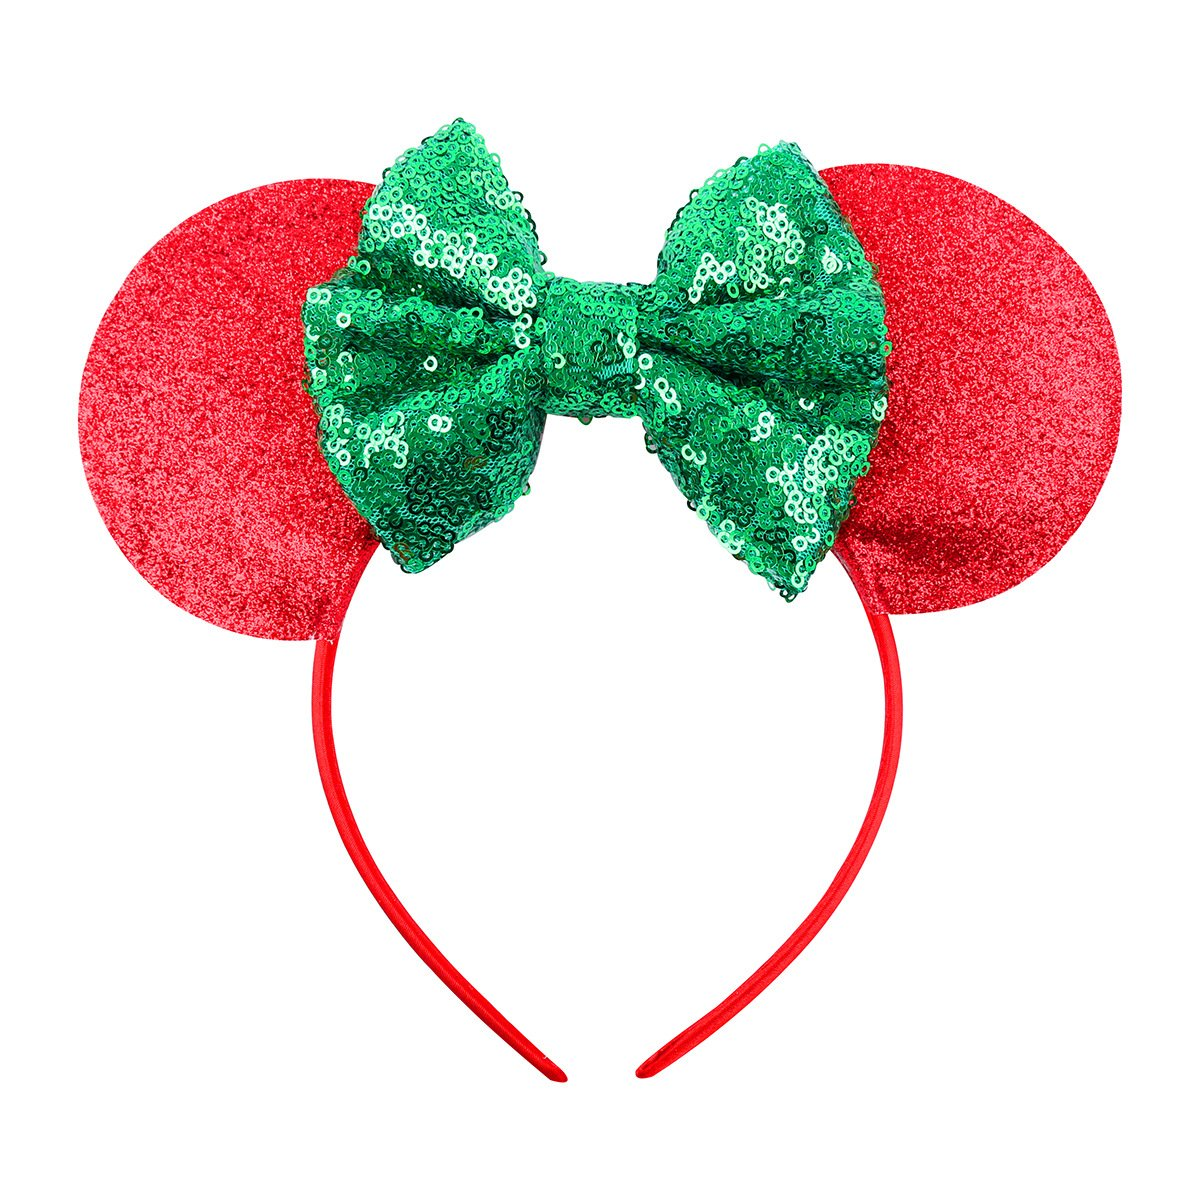 A Miaow Black Mouse Ears Headband MM Glitter Hair Hoop Girls Women Adults Butterfly Sequin Costum Hair Clasp Birthday Party Holiday Park Accessory  Red and Green